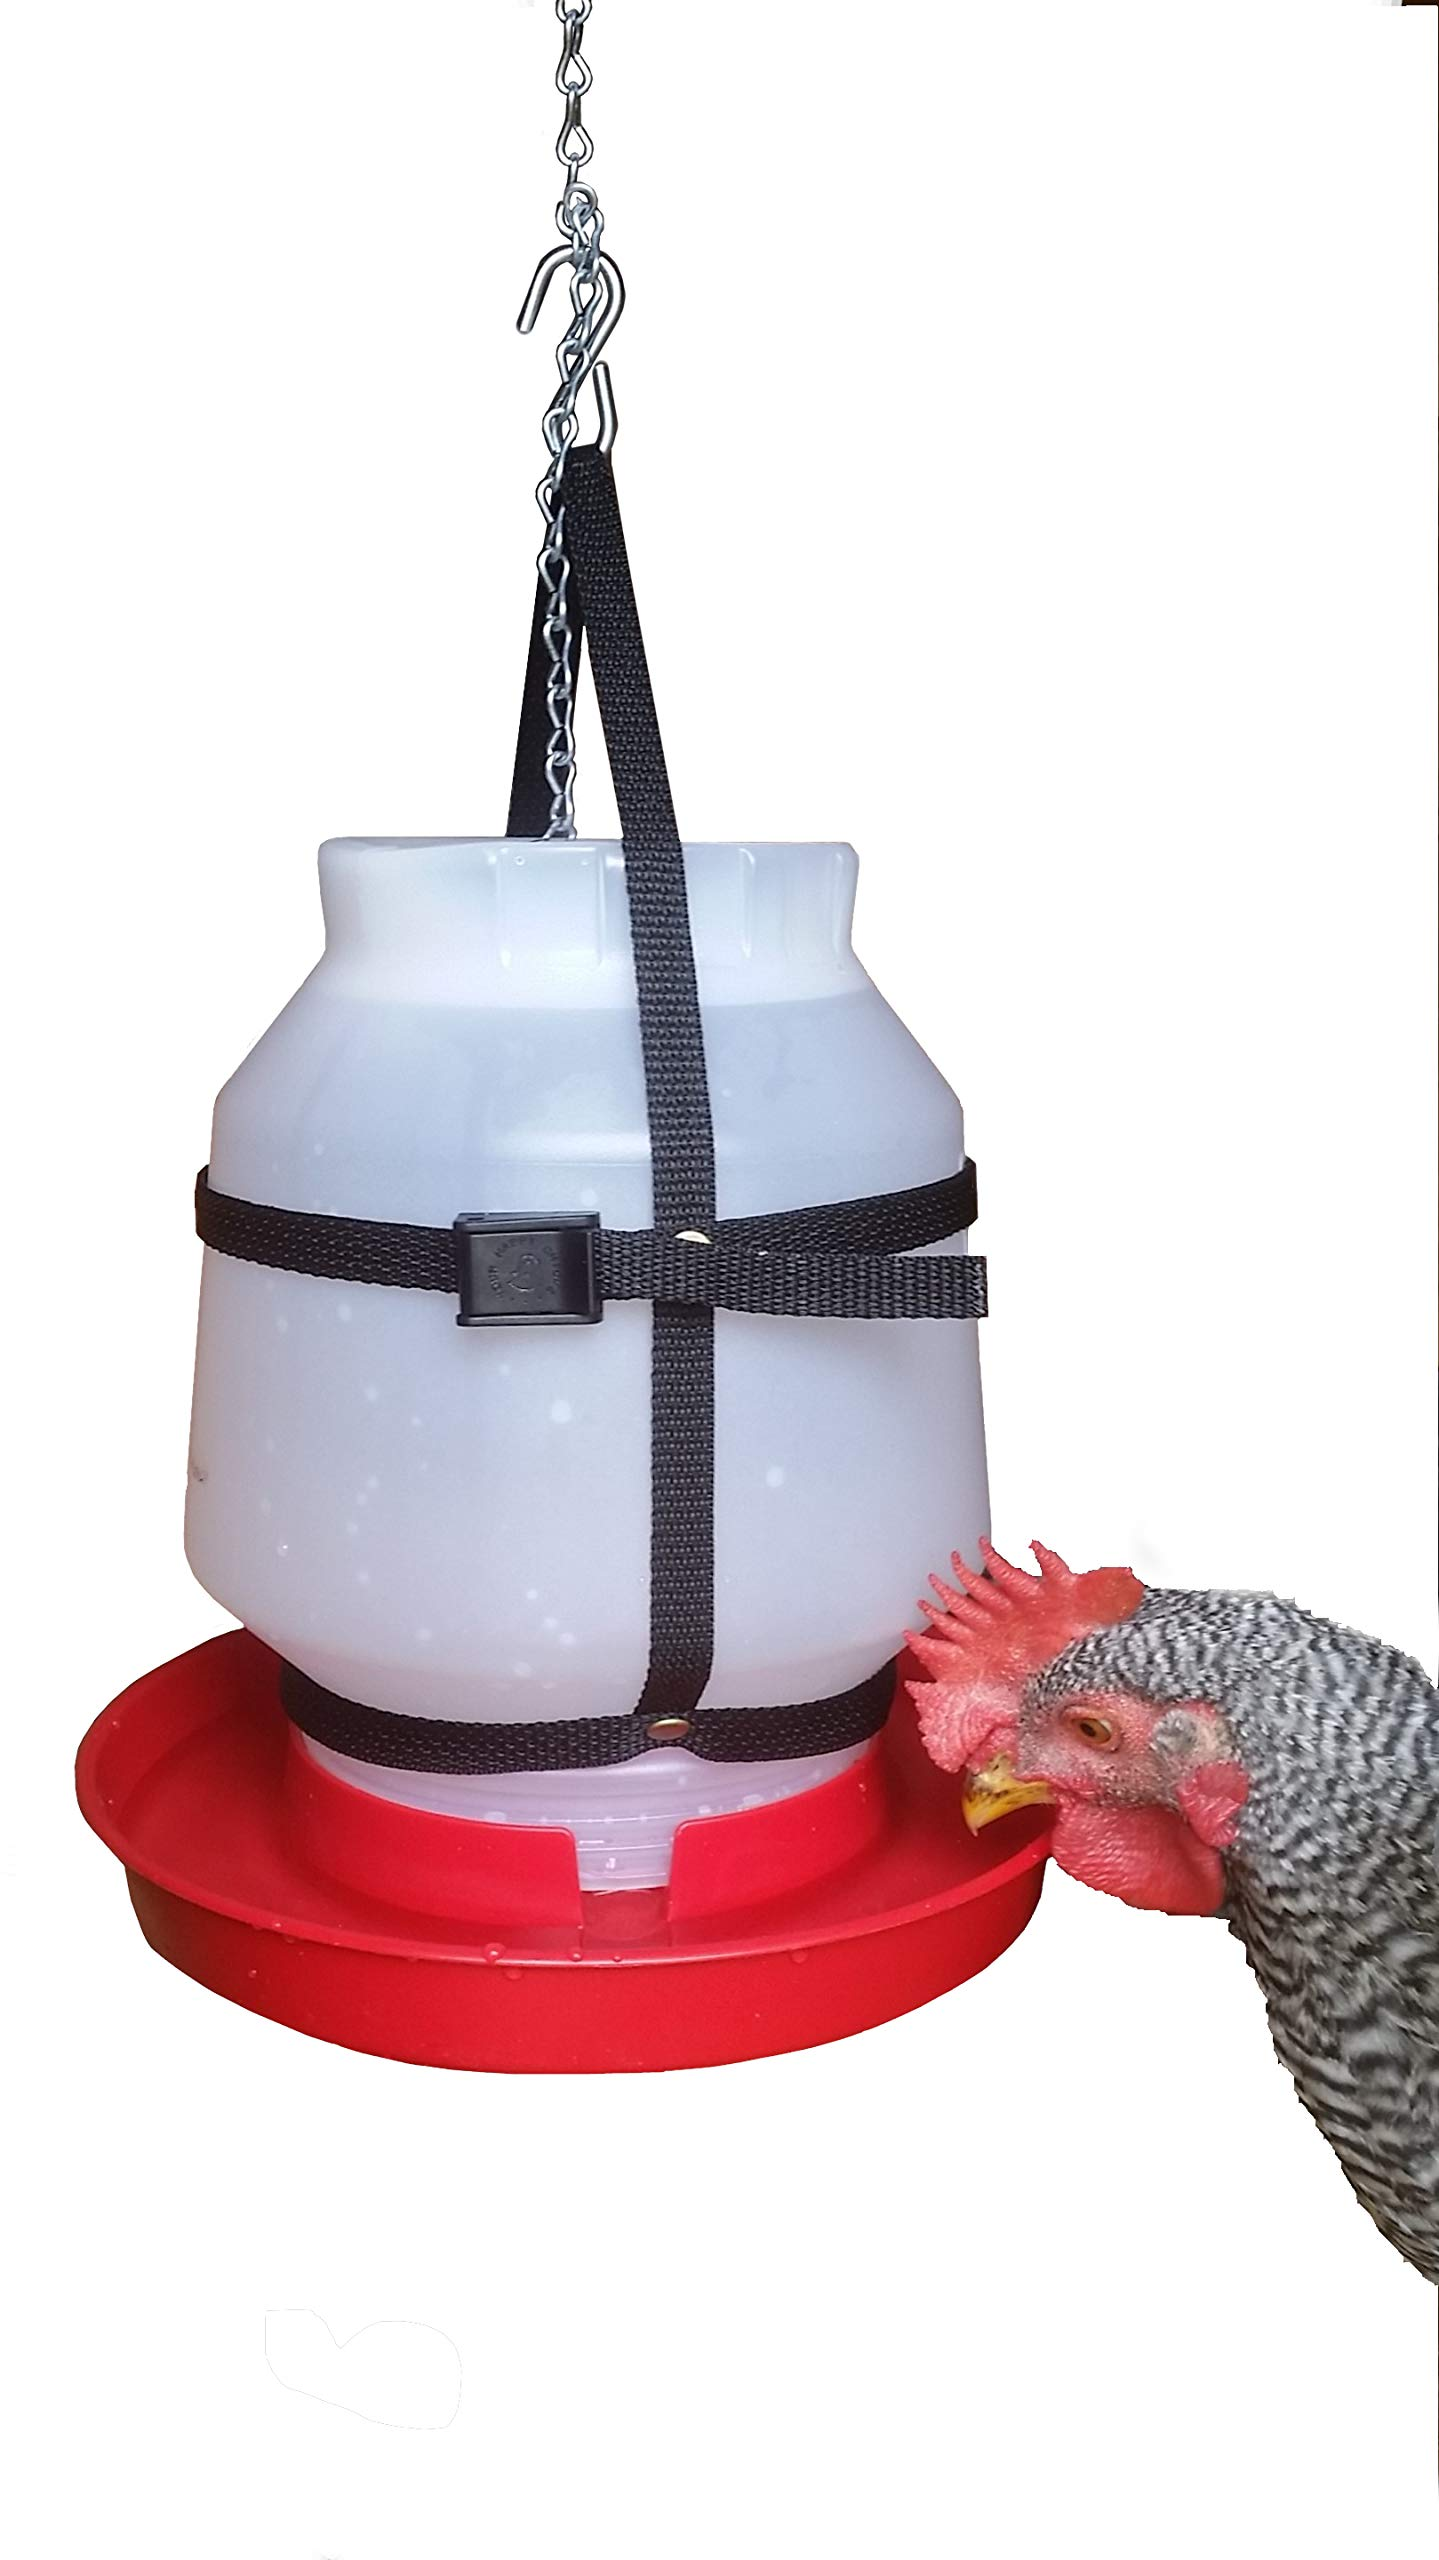 Your Happy Chicks 1 Gallon Hanging Harness (Little Giant) by Your Happy Chicks